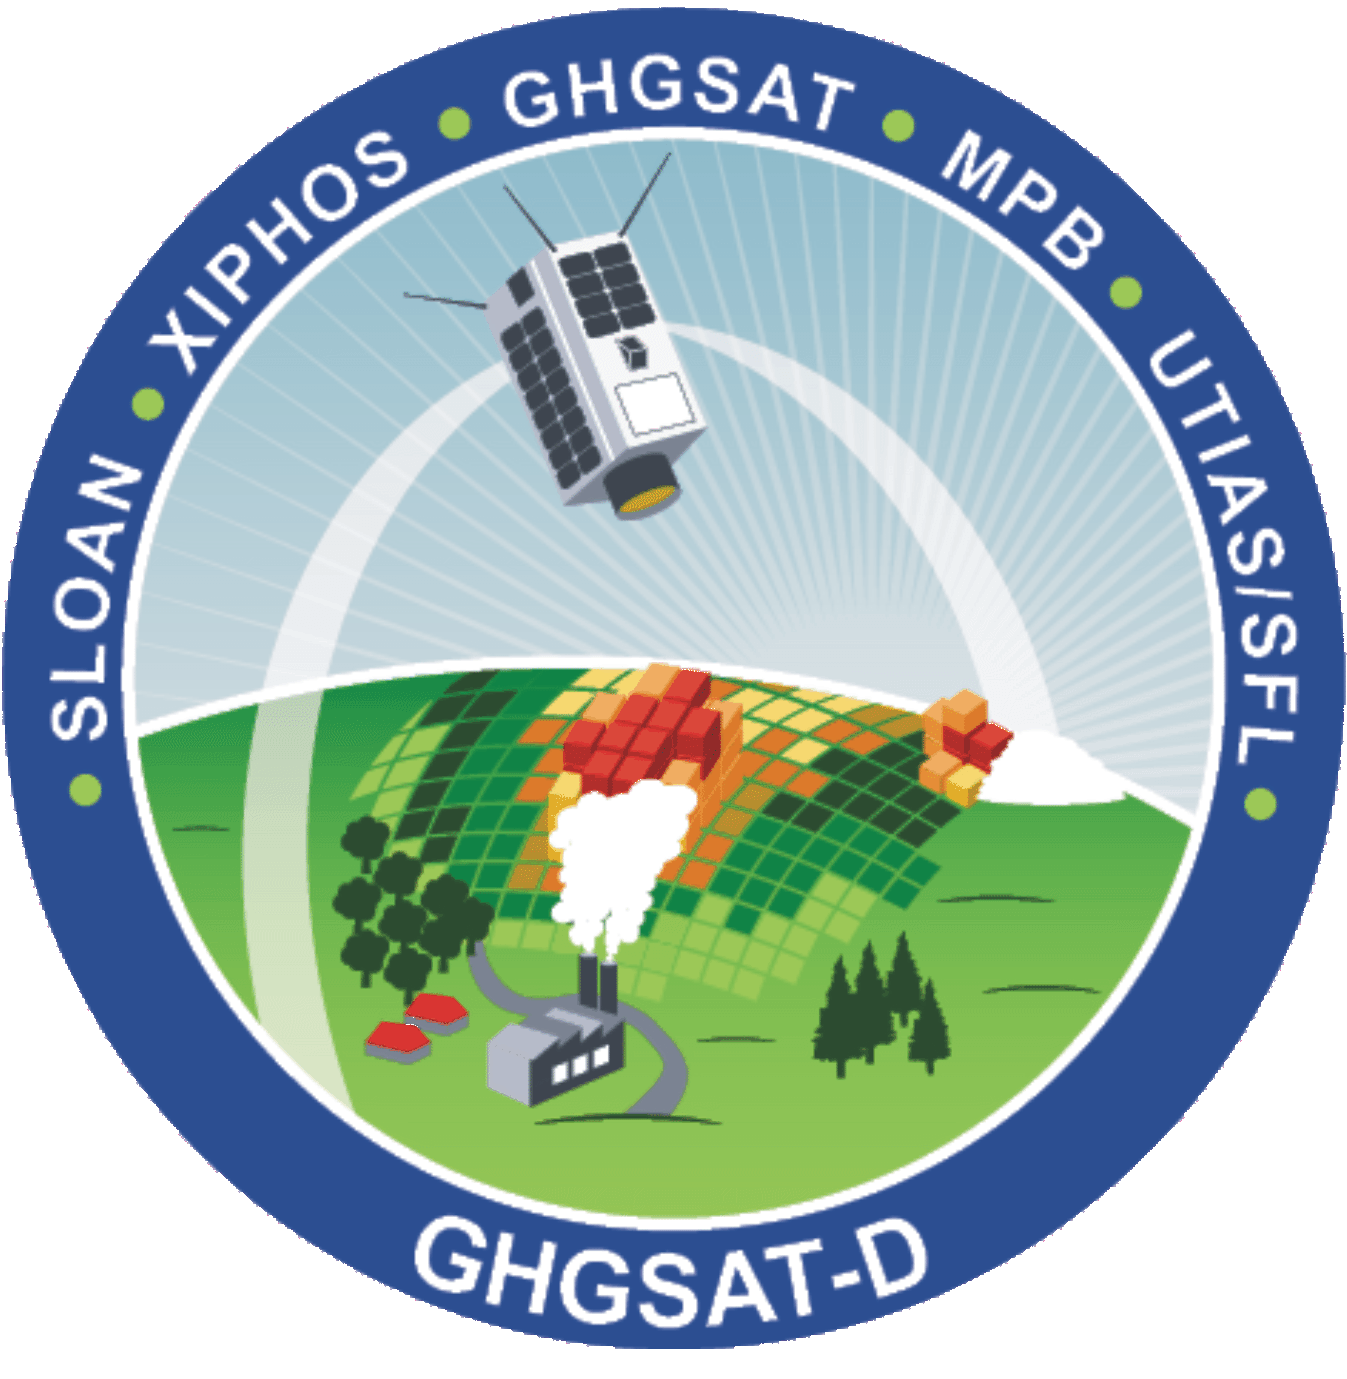 GHGSat-D Mission Patch